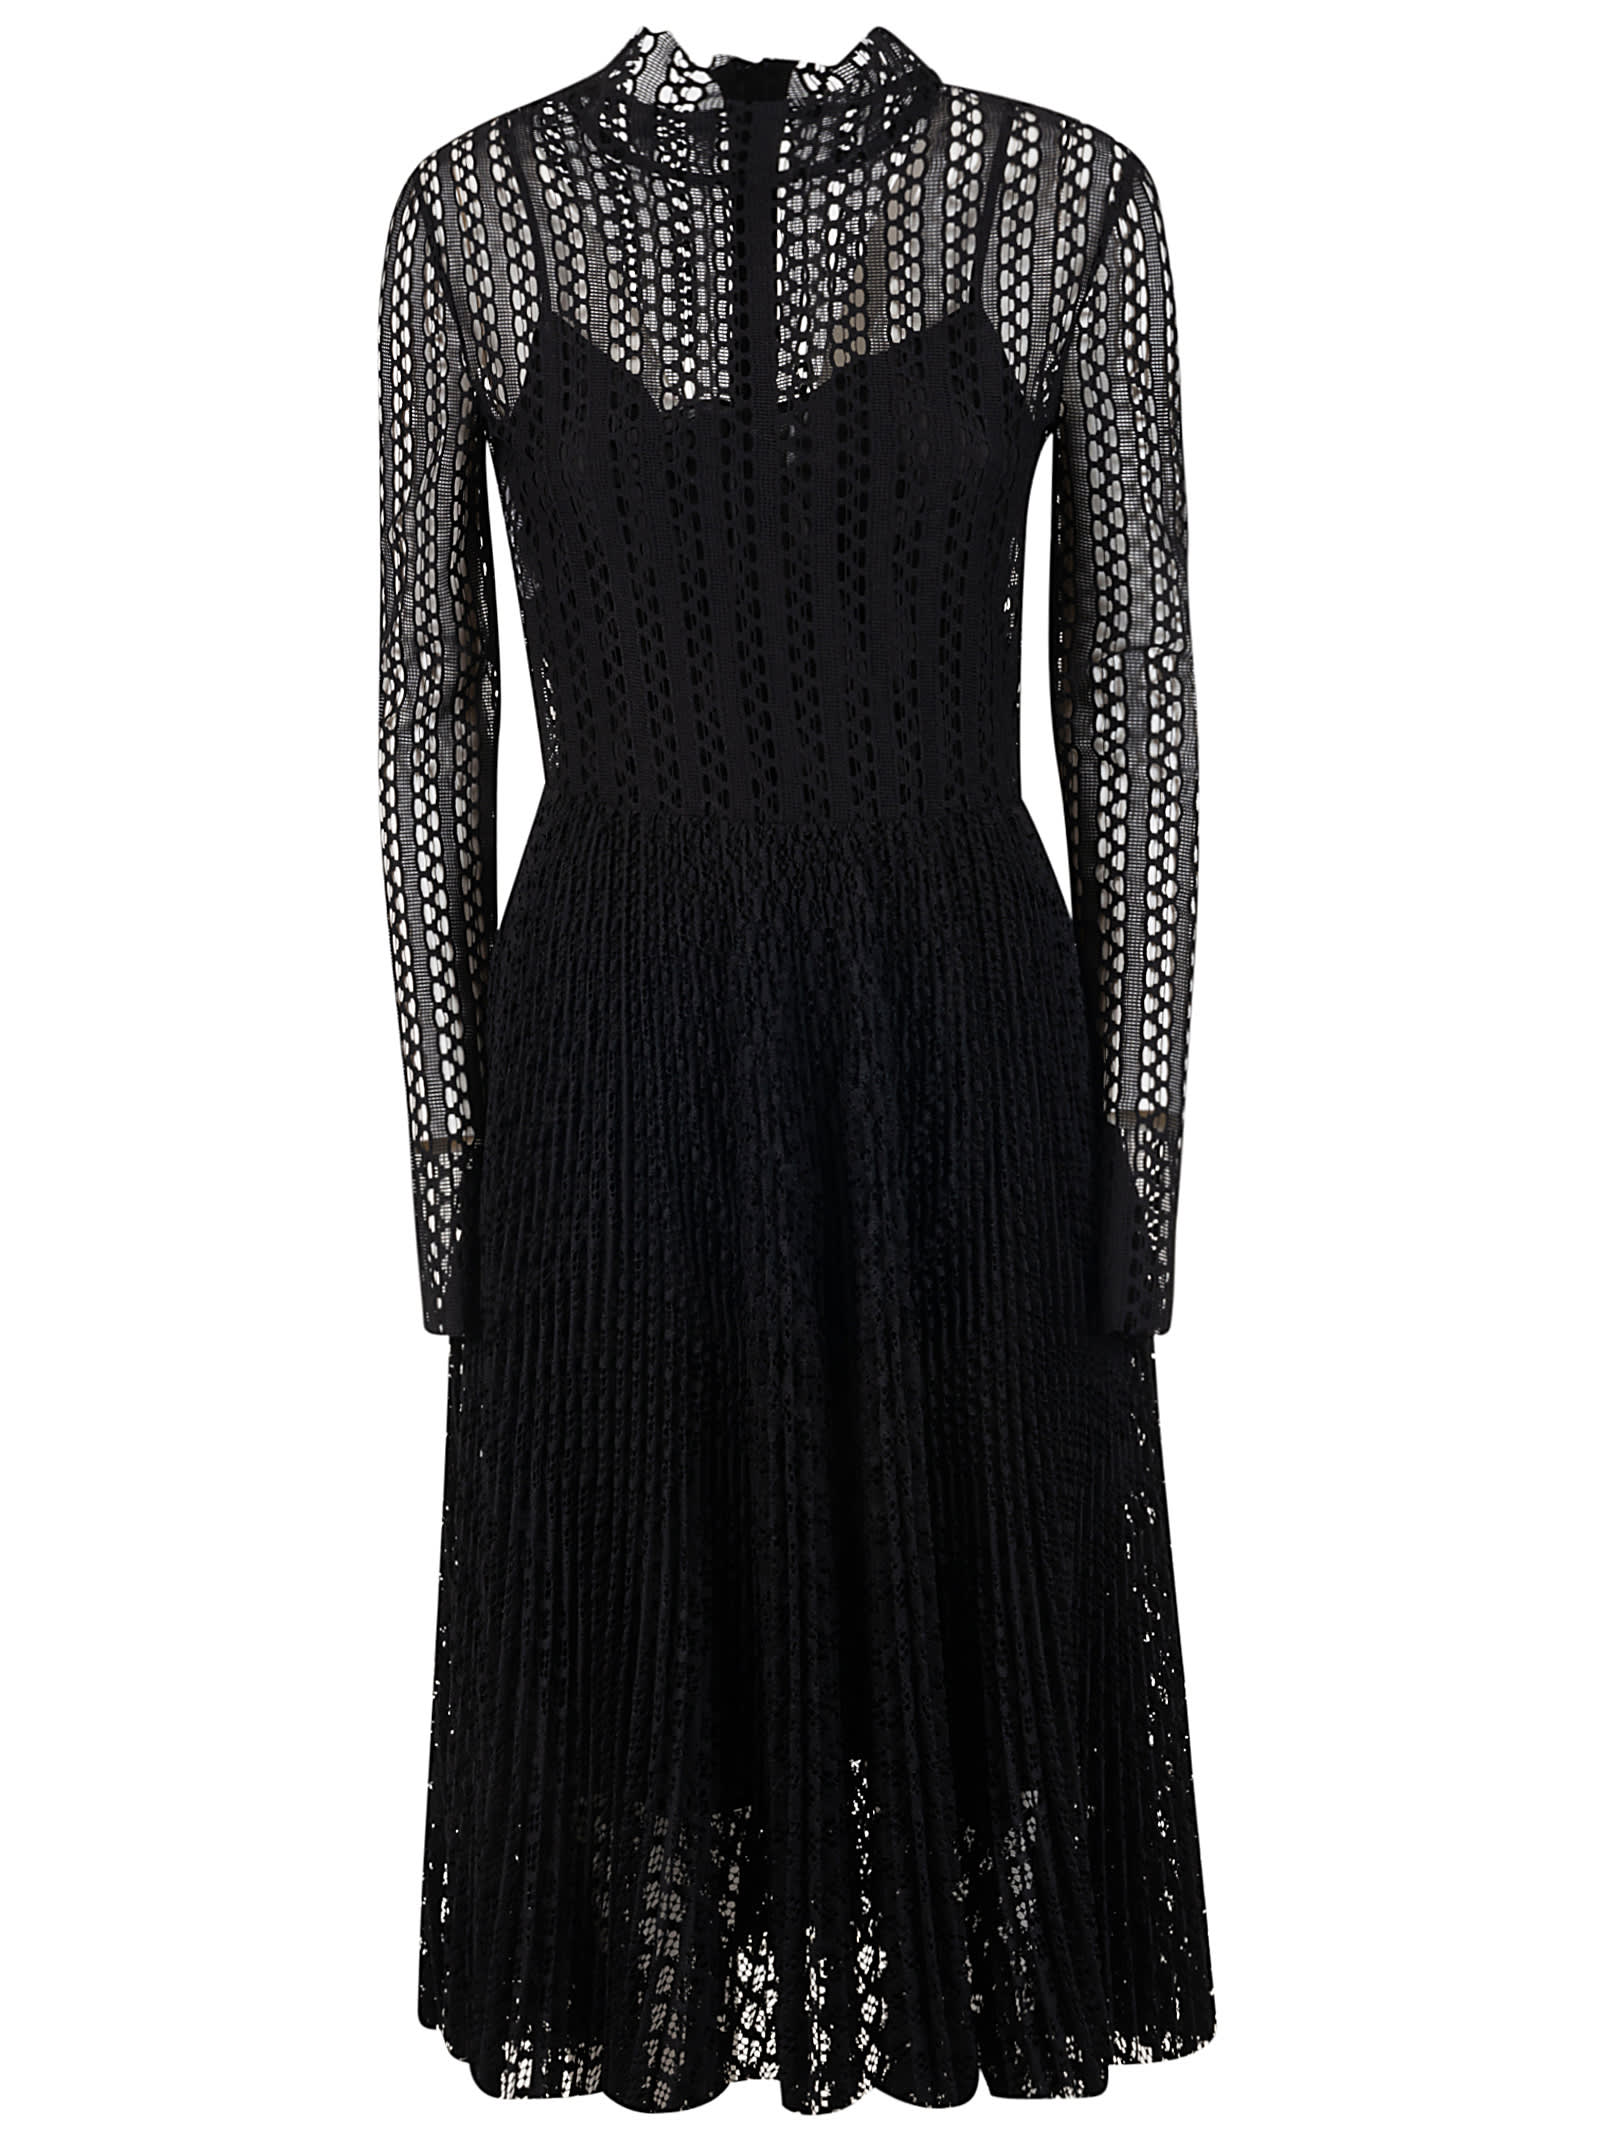 Philosophy di Lorenzo Serafini Perforated Dress